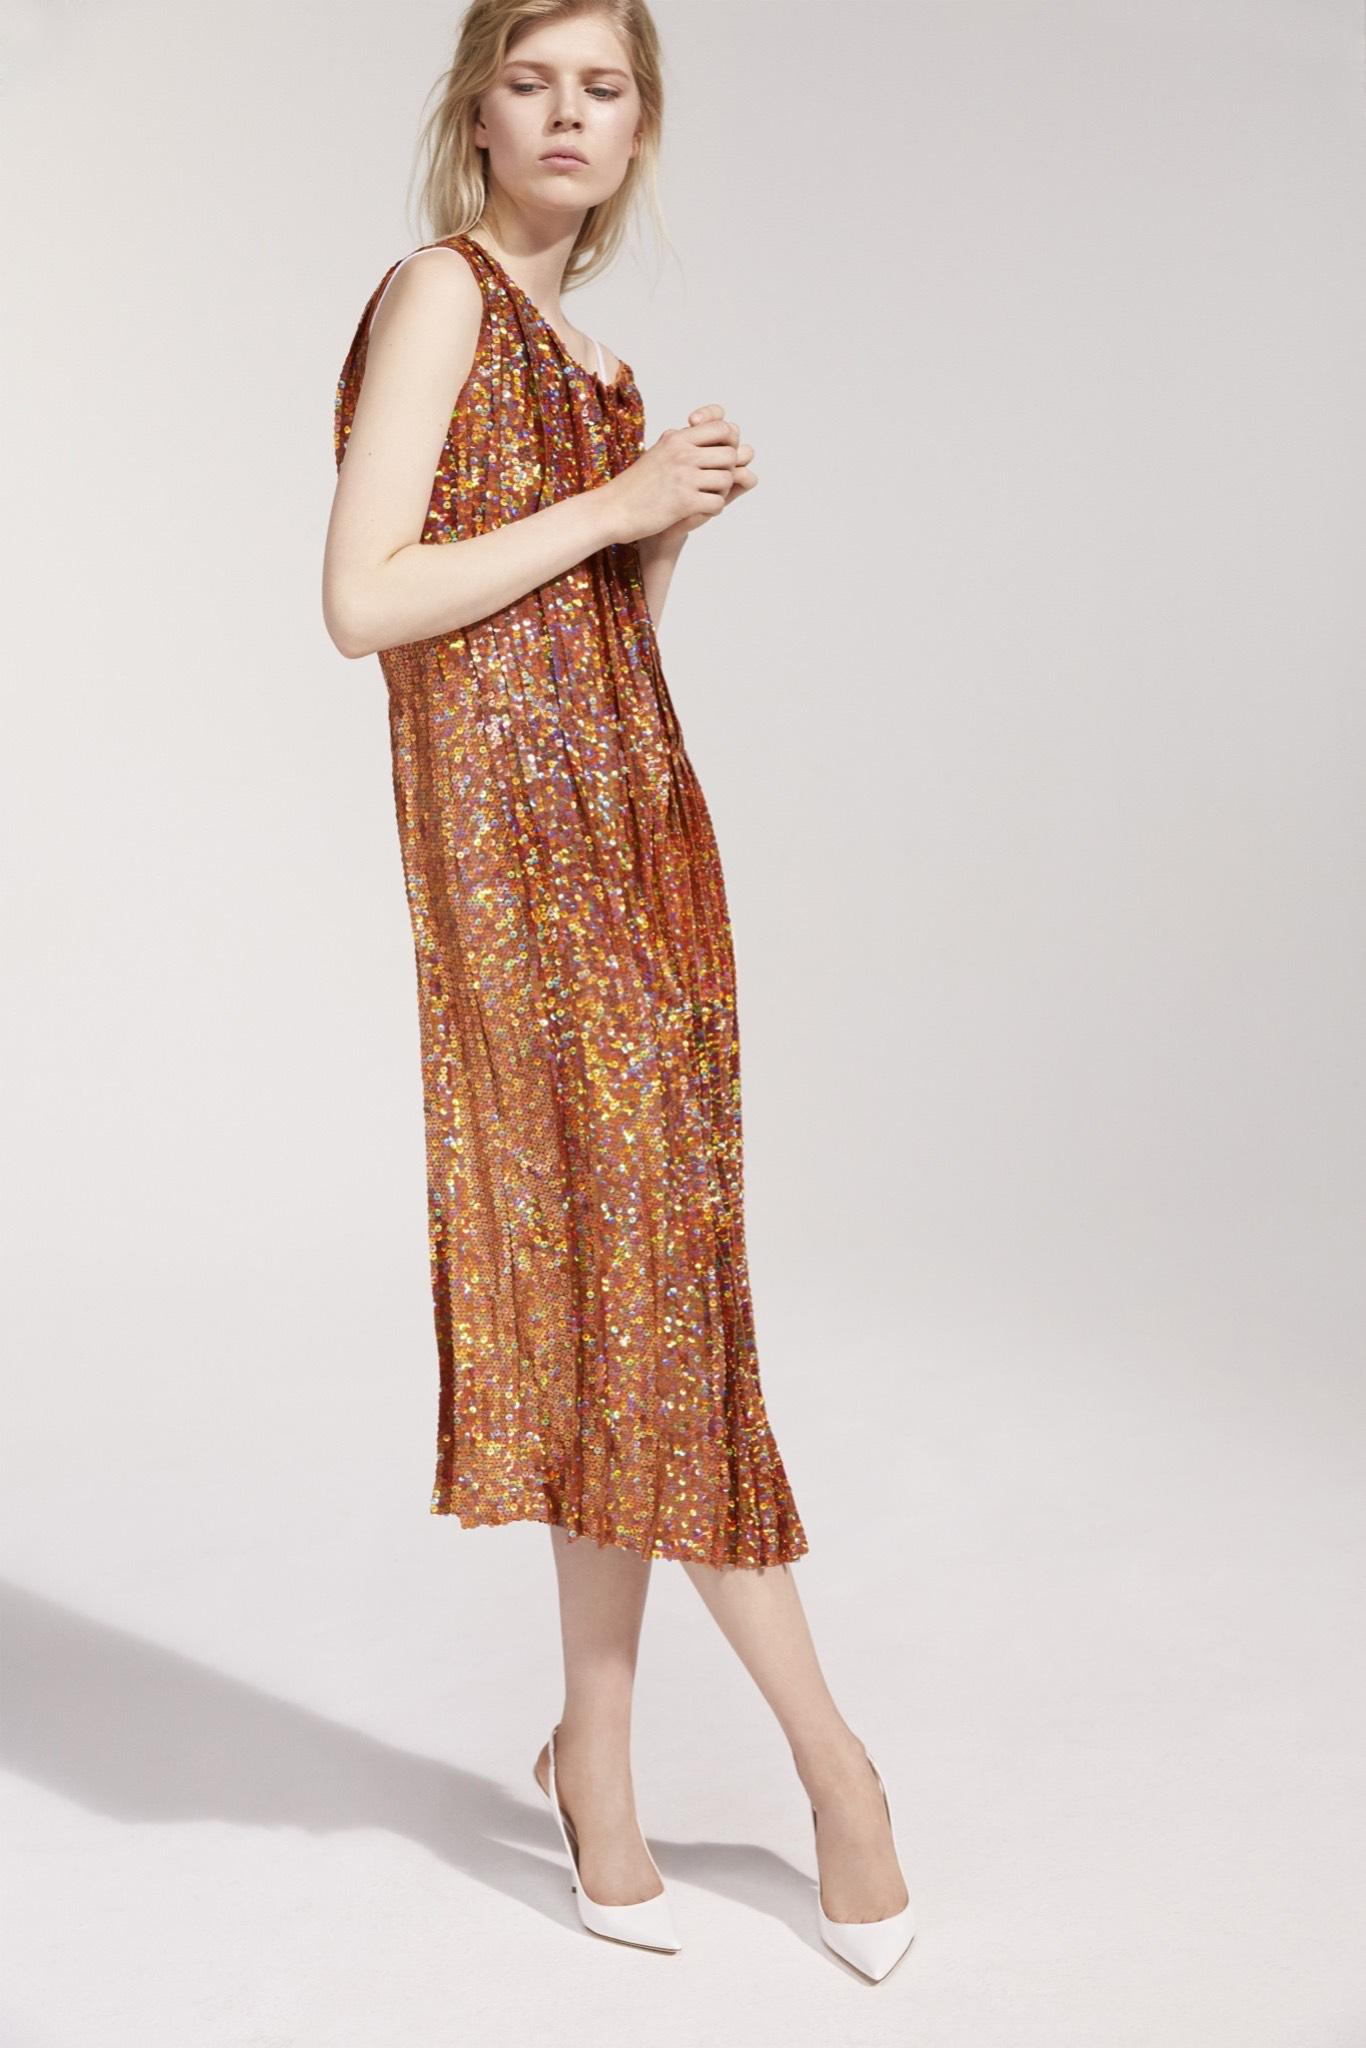 Just in: Complete look book images from Nina Ricci Resort '16 are here: http://t.co/bipWchn690 http://t.co/MN3gi722yy